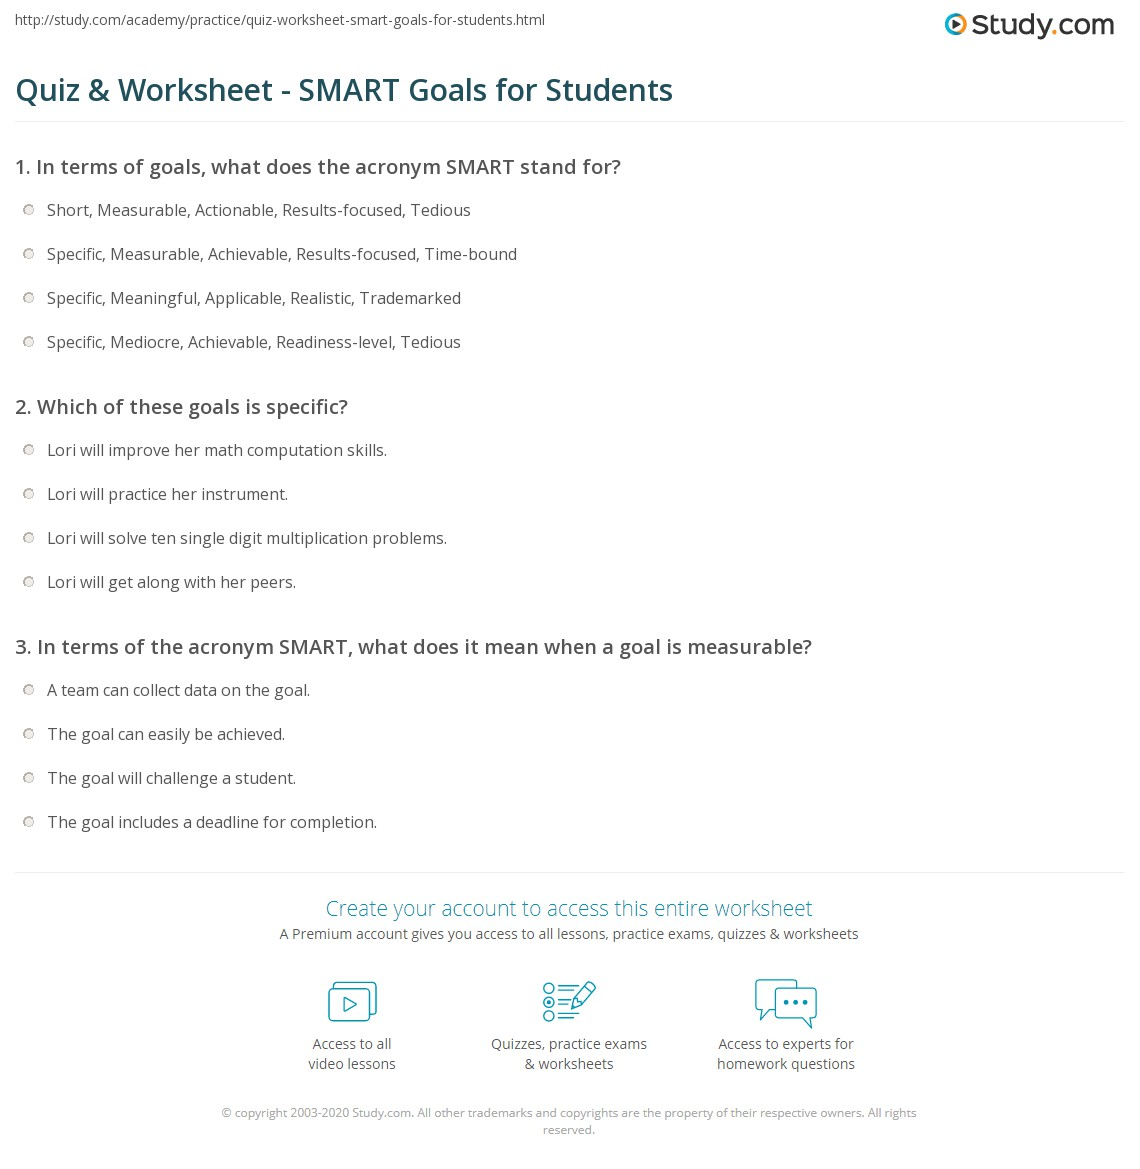 Quiz Worksheet Smart Goals For Students Study Com